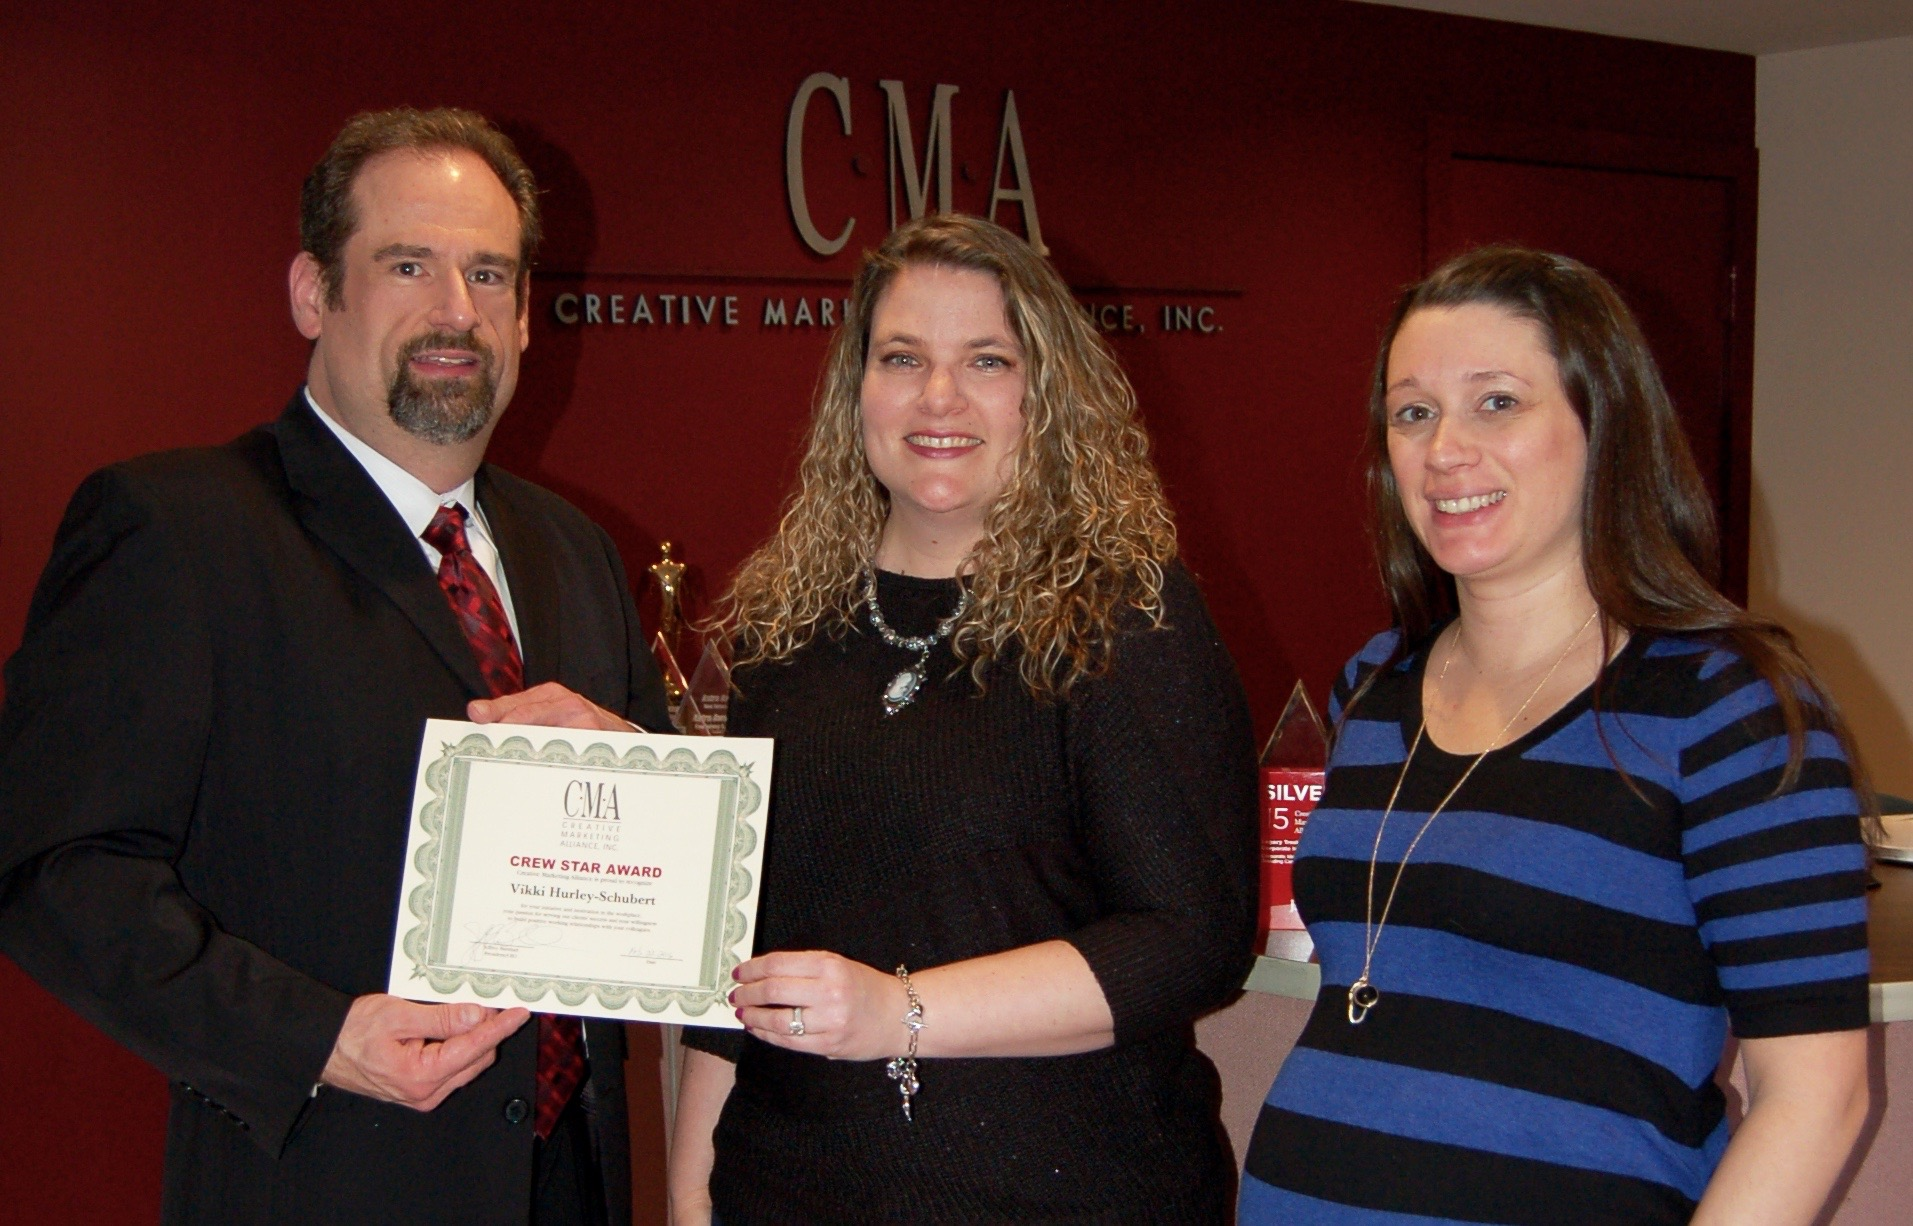 Kenneth Hitchner, public relations and social media director and fourth quarter Crew Star presents Victoria Hurley-Schubert, public relations account executive with the Crew Star award for the first quarter with Erin Klebaur, director of marketing services.